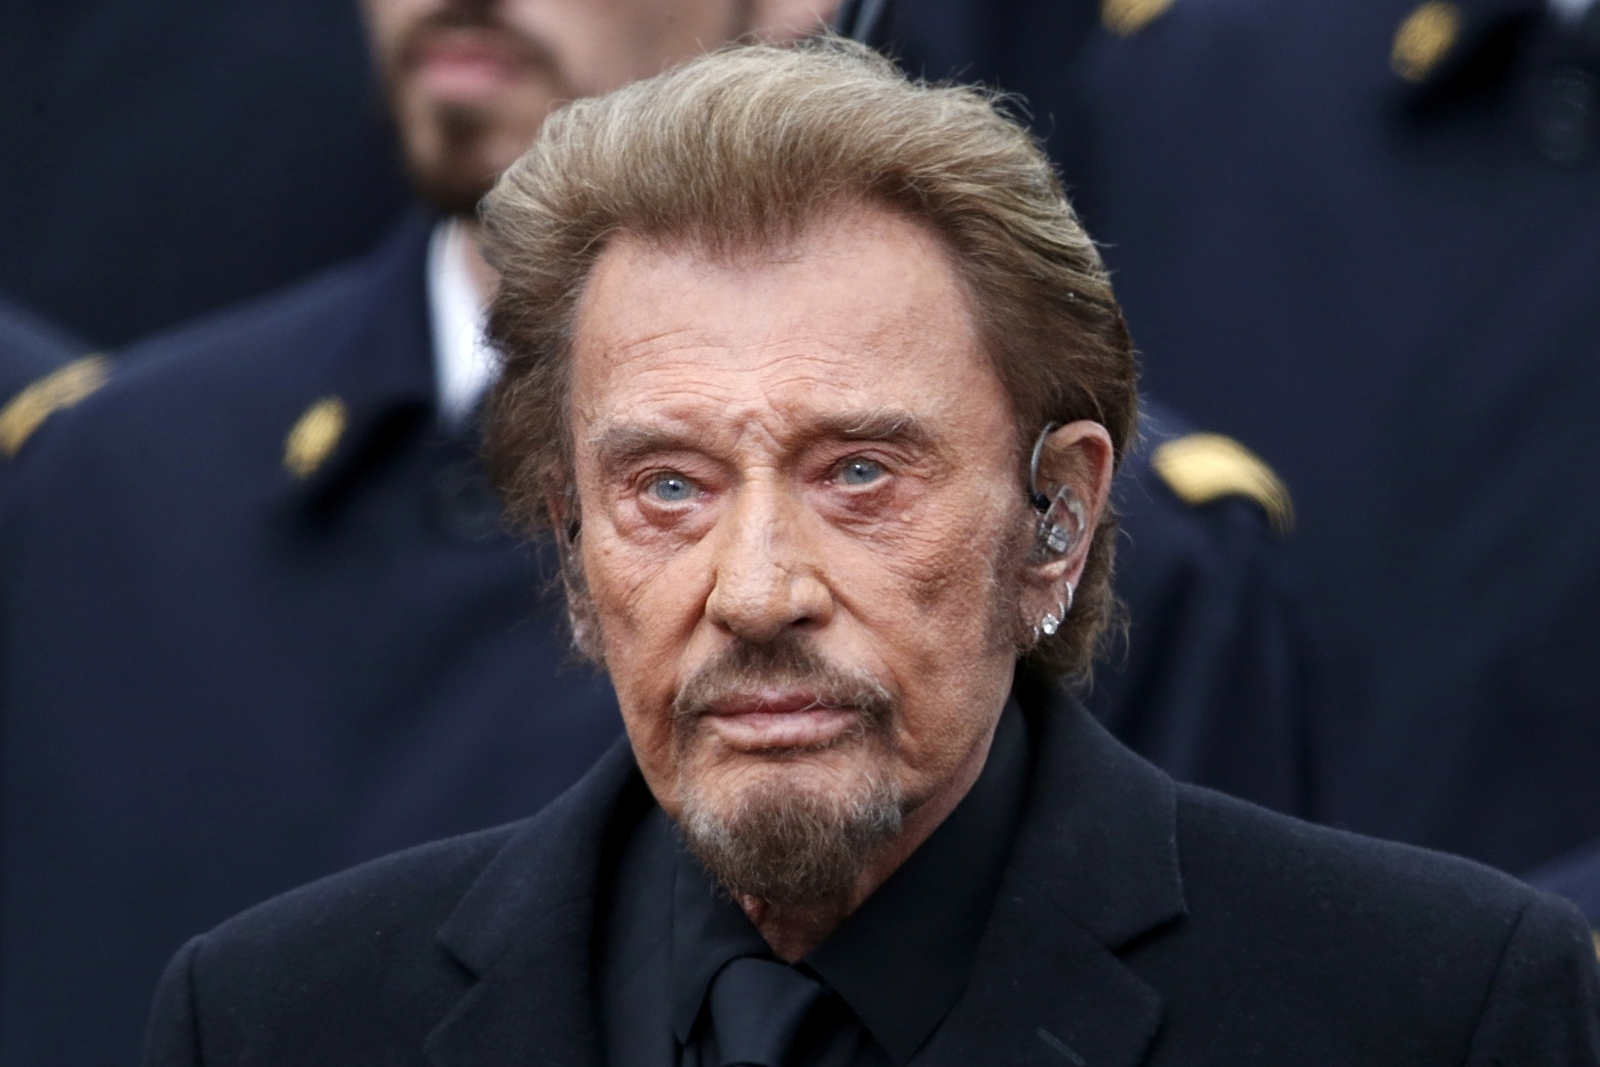 France's king of rock Johnny Hallyday dies aged 74, says wife